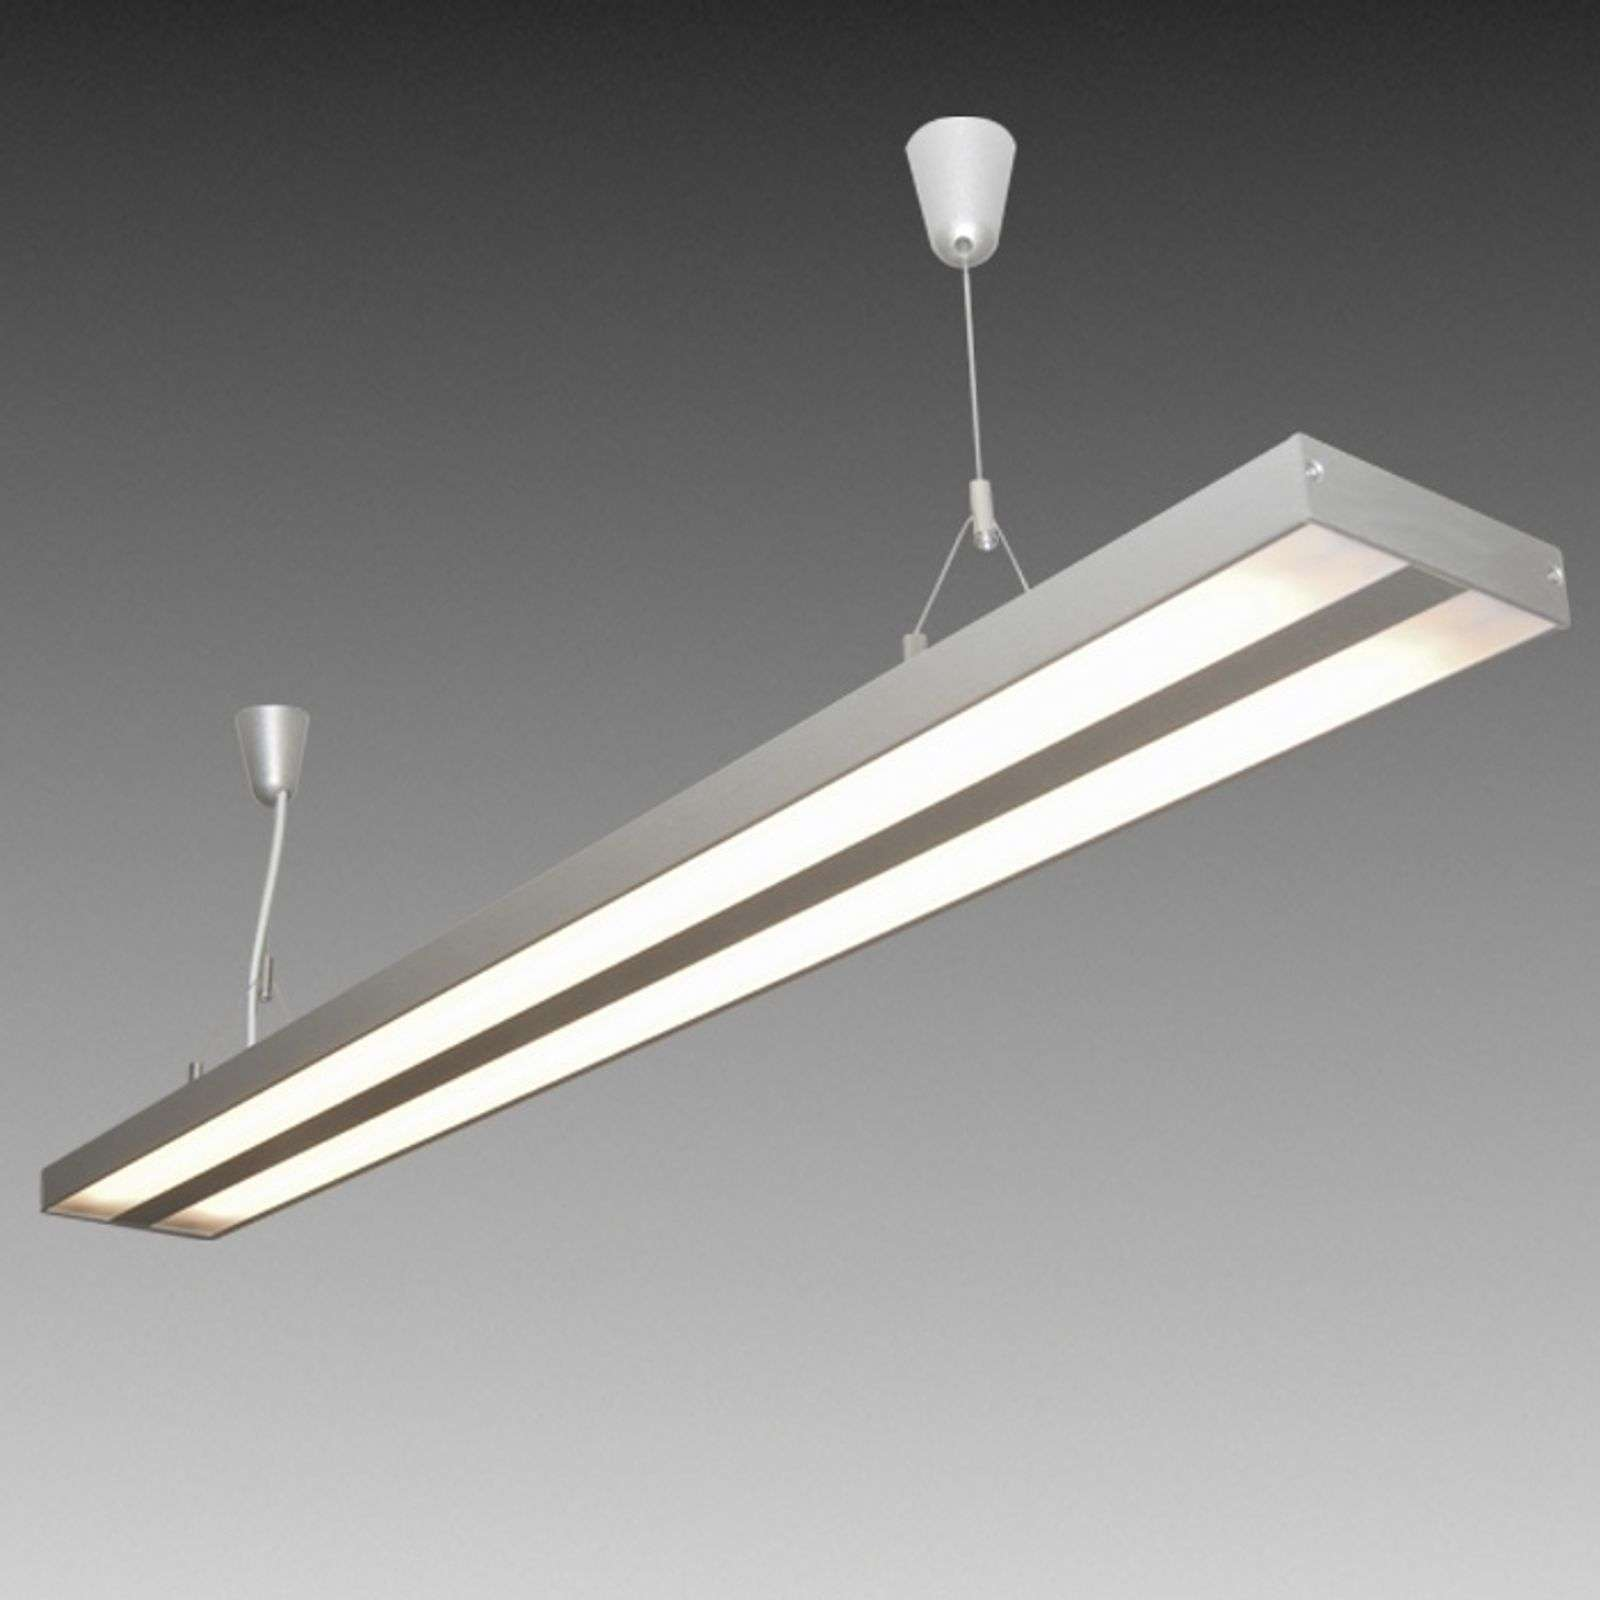 Suspension AIR LIGHT tube fluo 119 cm blanc chaud